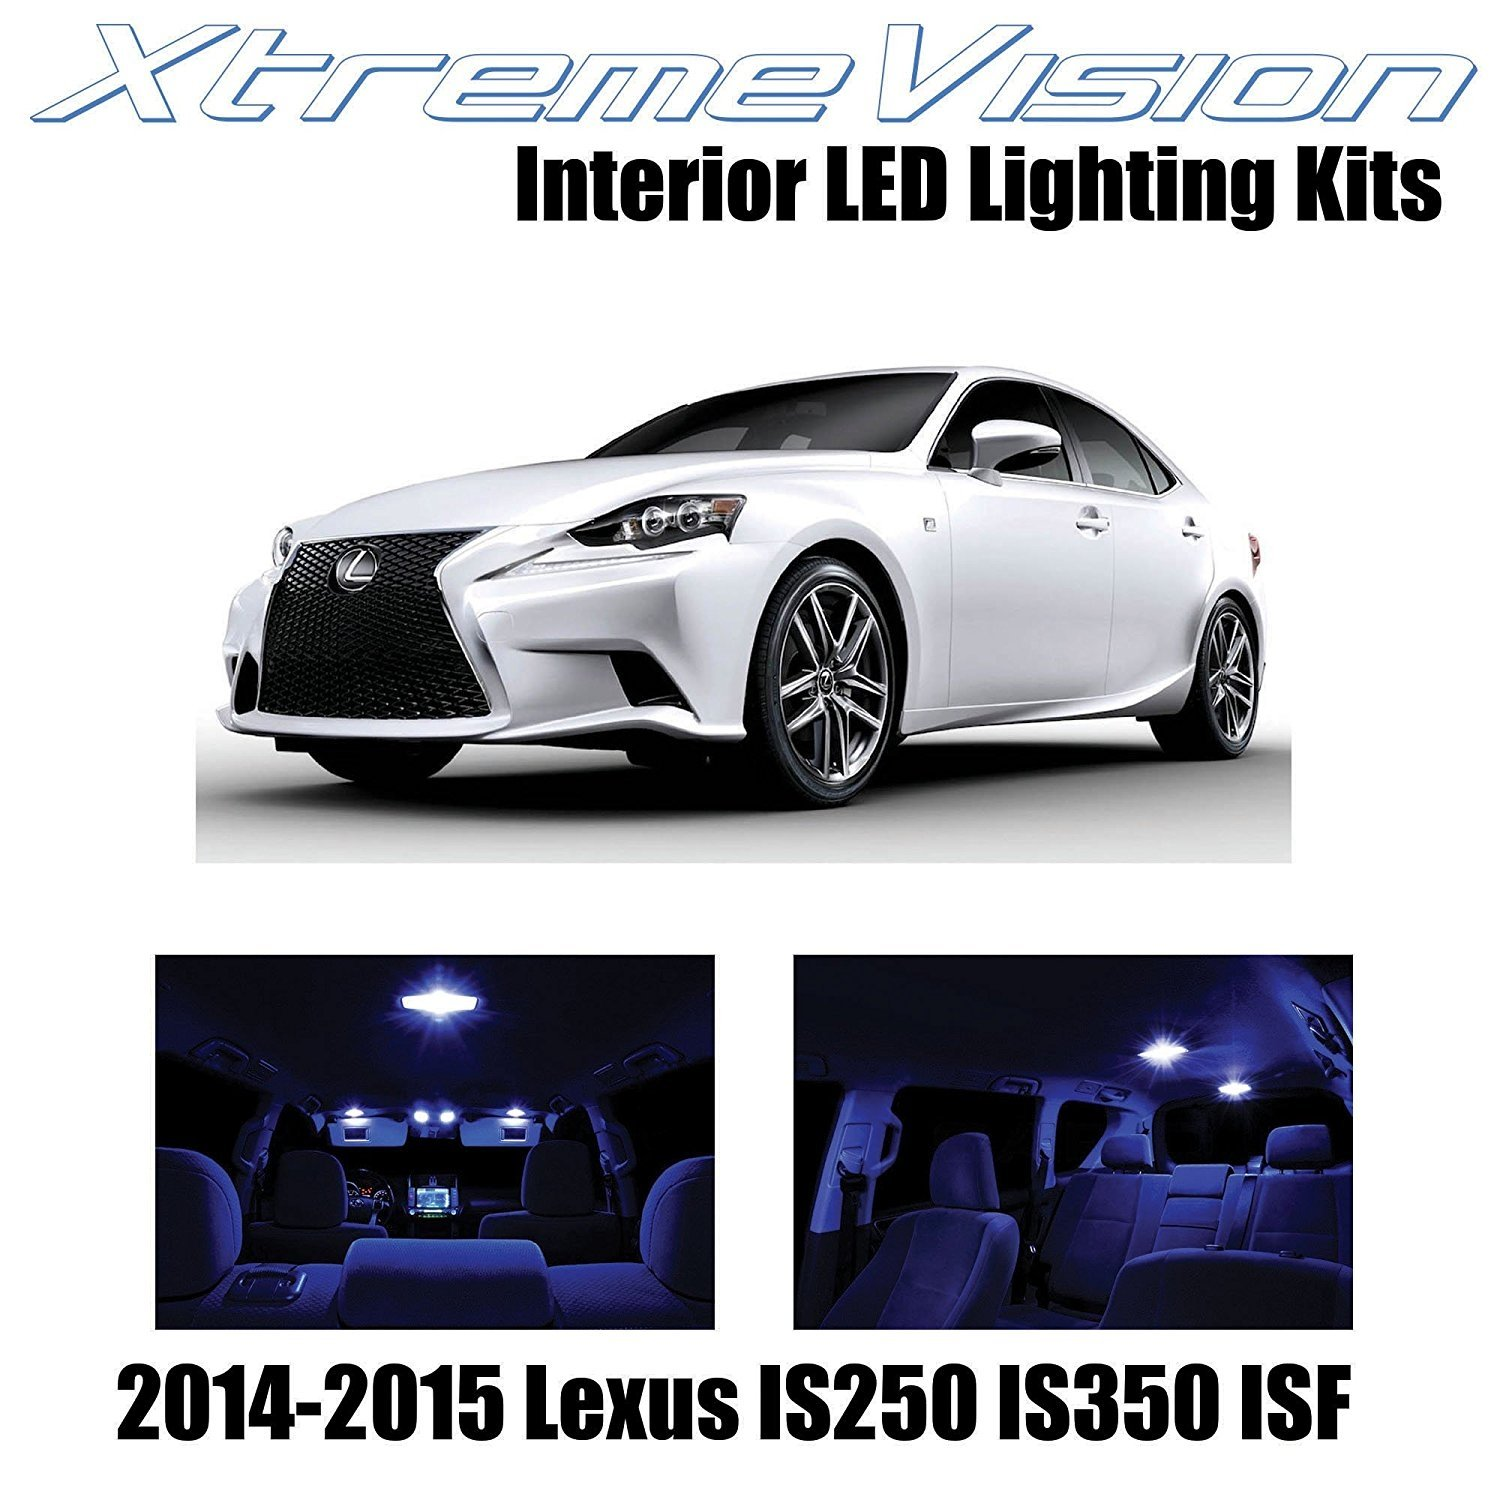 XtremeVision LED for Lexus IS250 IS350 ISF 2014-2015 (11 Pieces) Blue Premium Interior LED Kit Package + Installation Tool